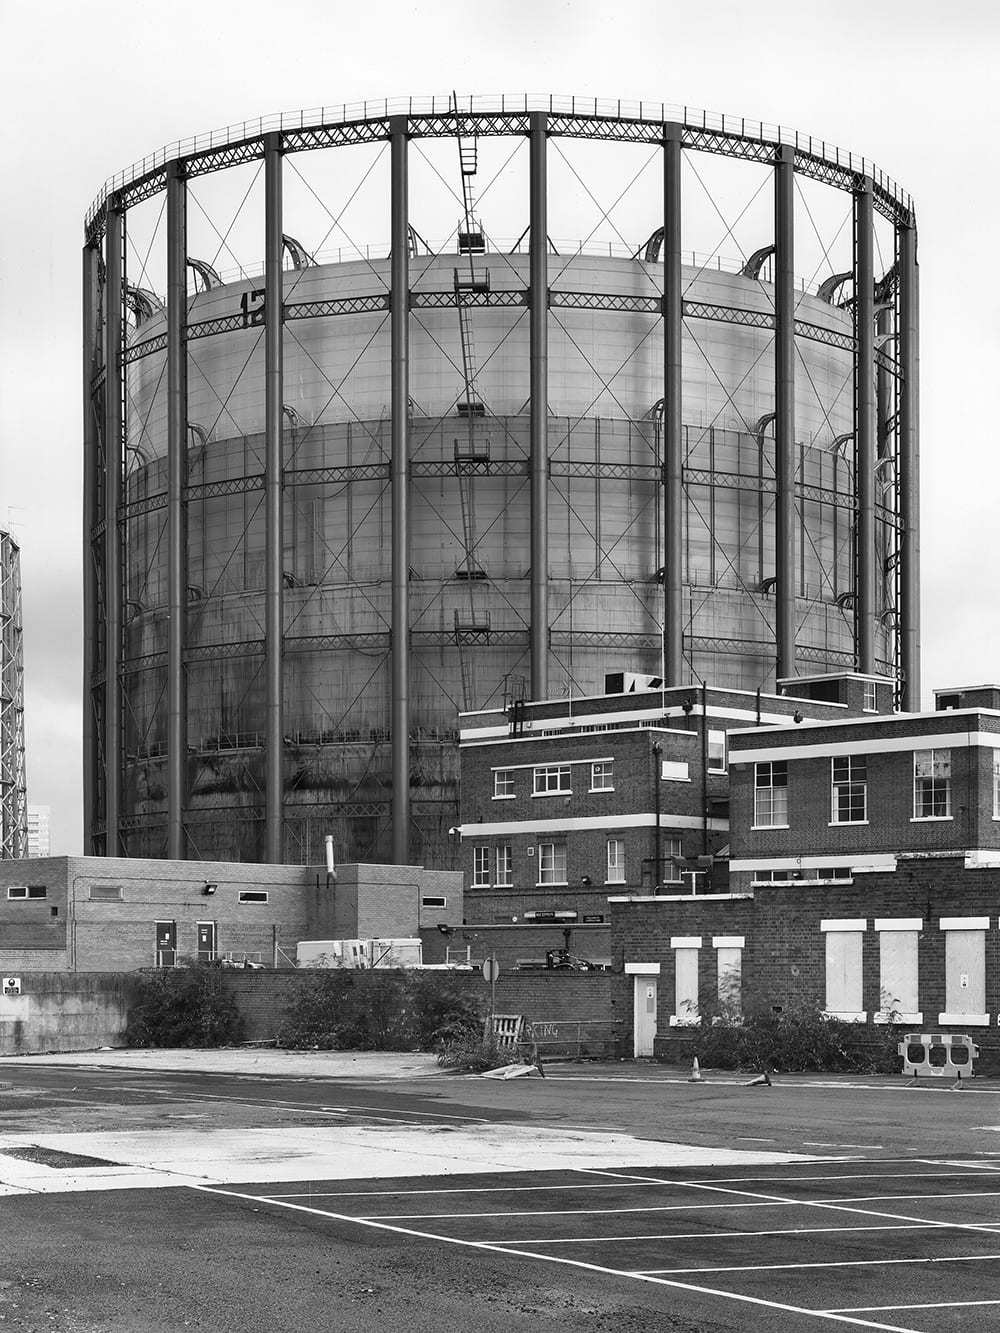 Gasometer, Aston, Birmingham, Great Britain, 2008